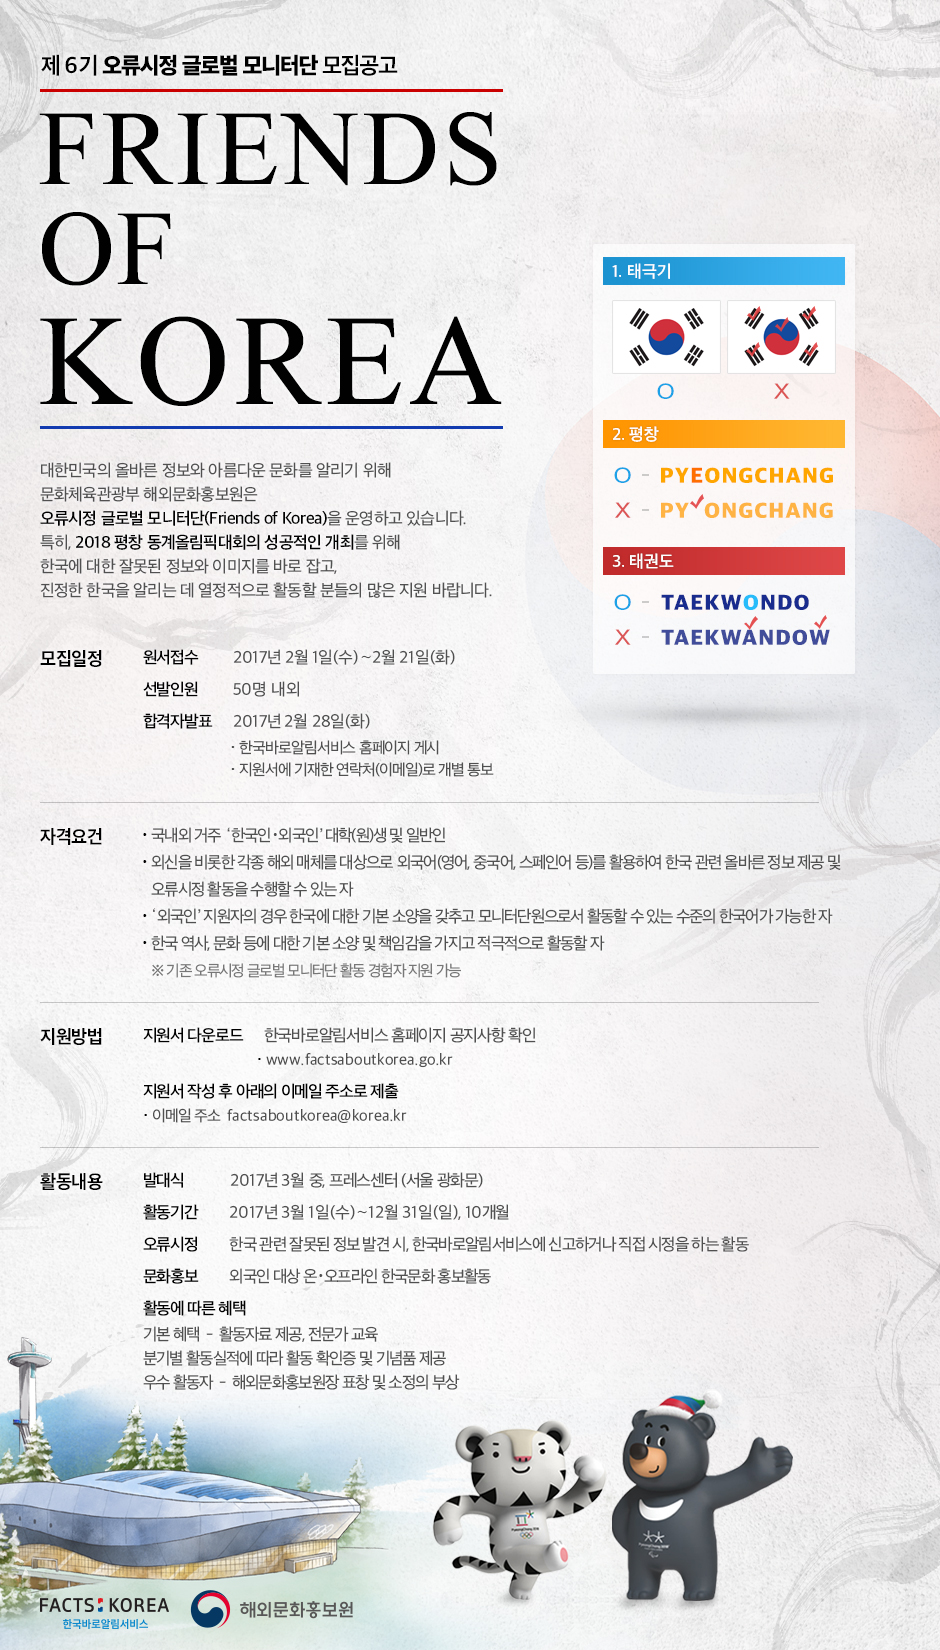 6th Friends of Korea Recruitment(saungkorea.com)